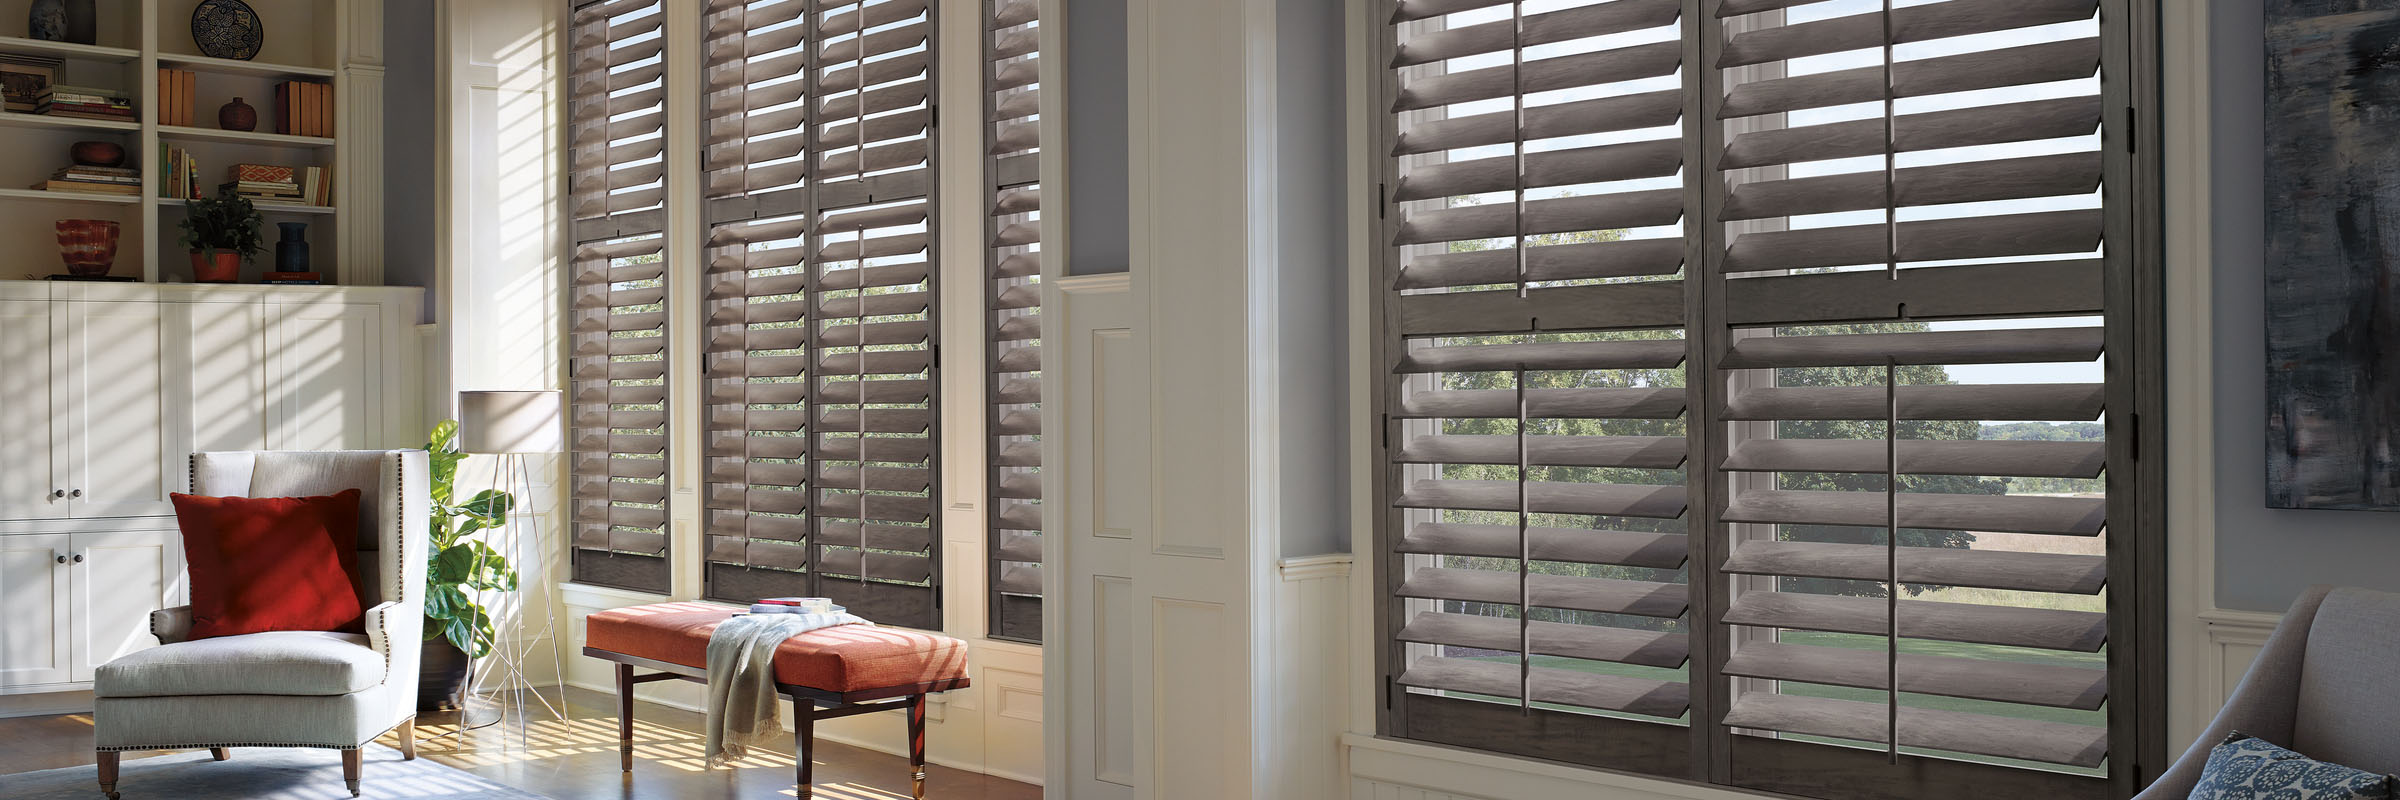 Interior shutters in Hardwood Salt and Pepper - Heritance